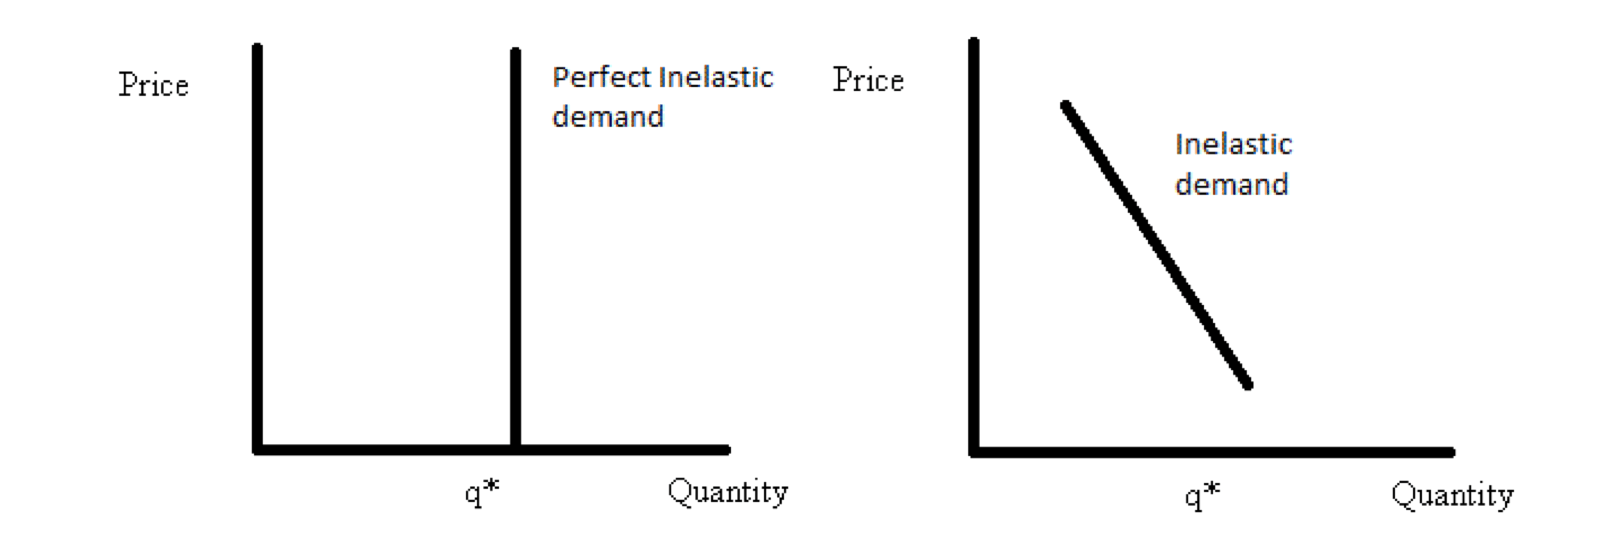 Perfectly Inelastic Demand Curve Example